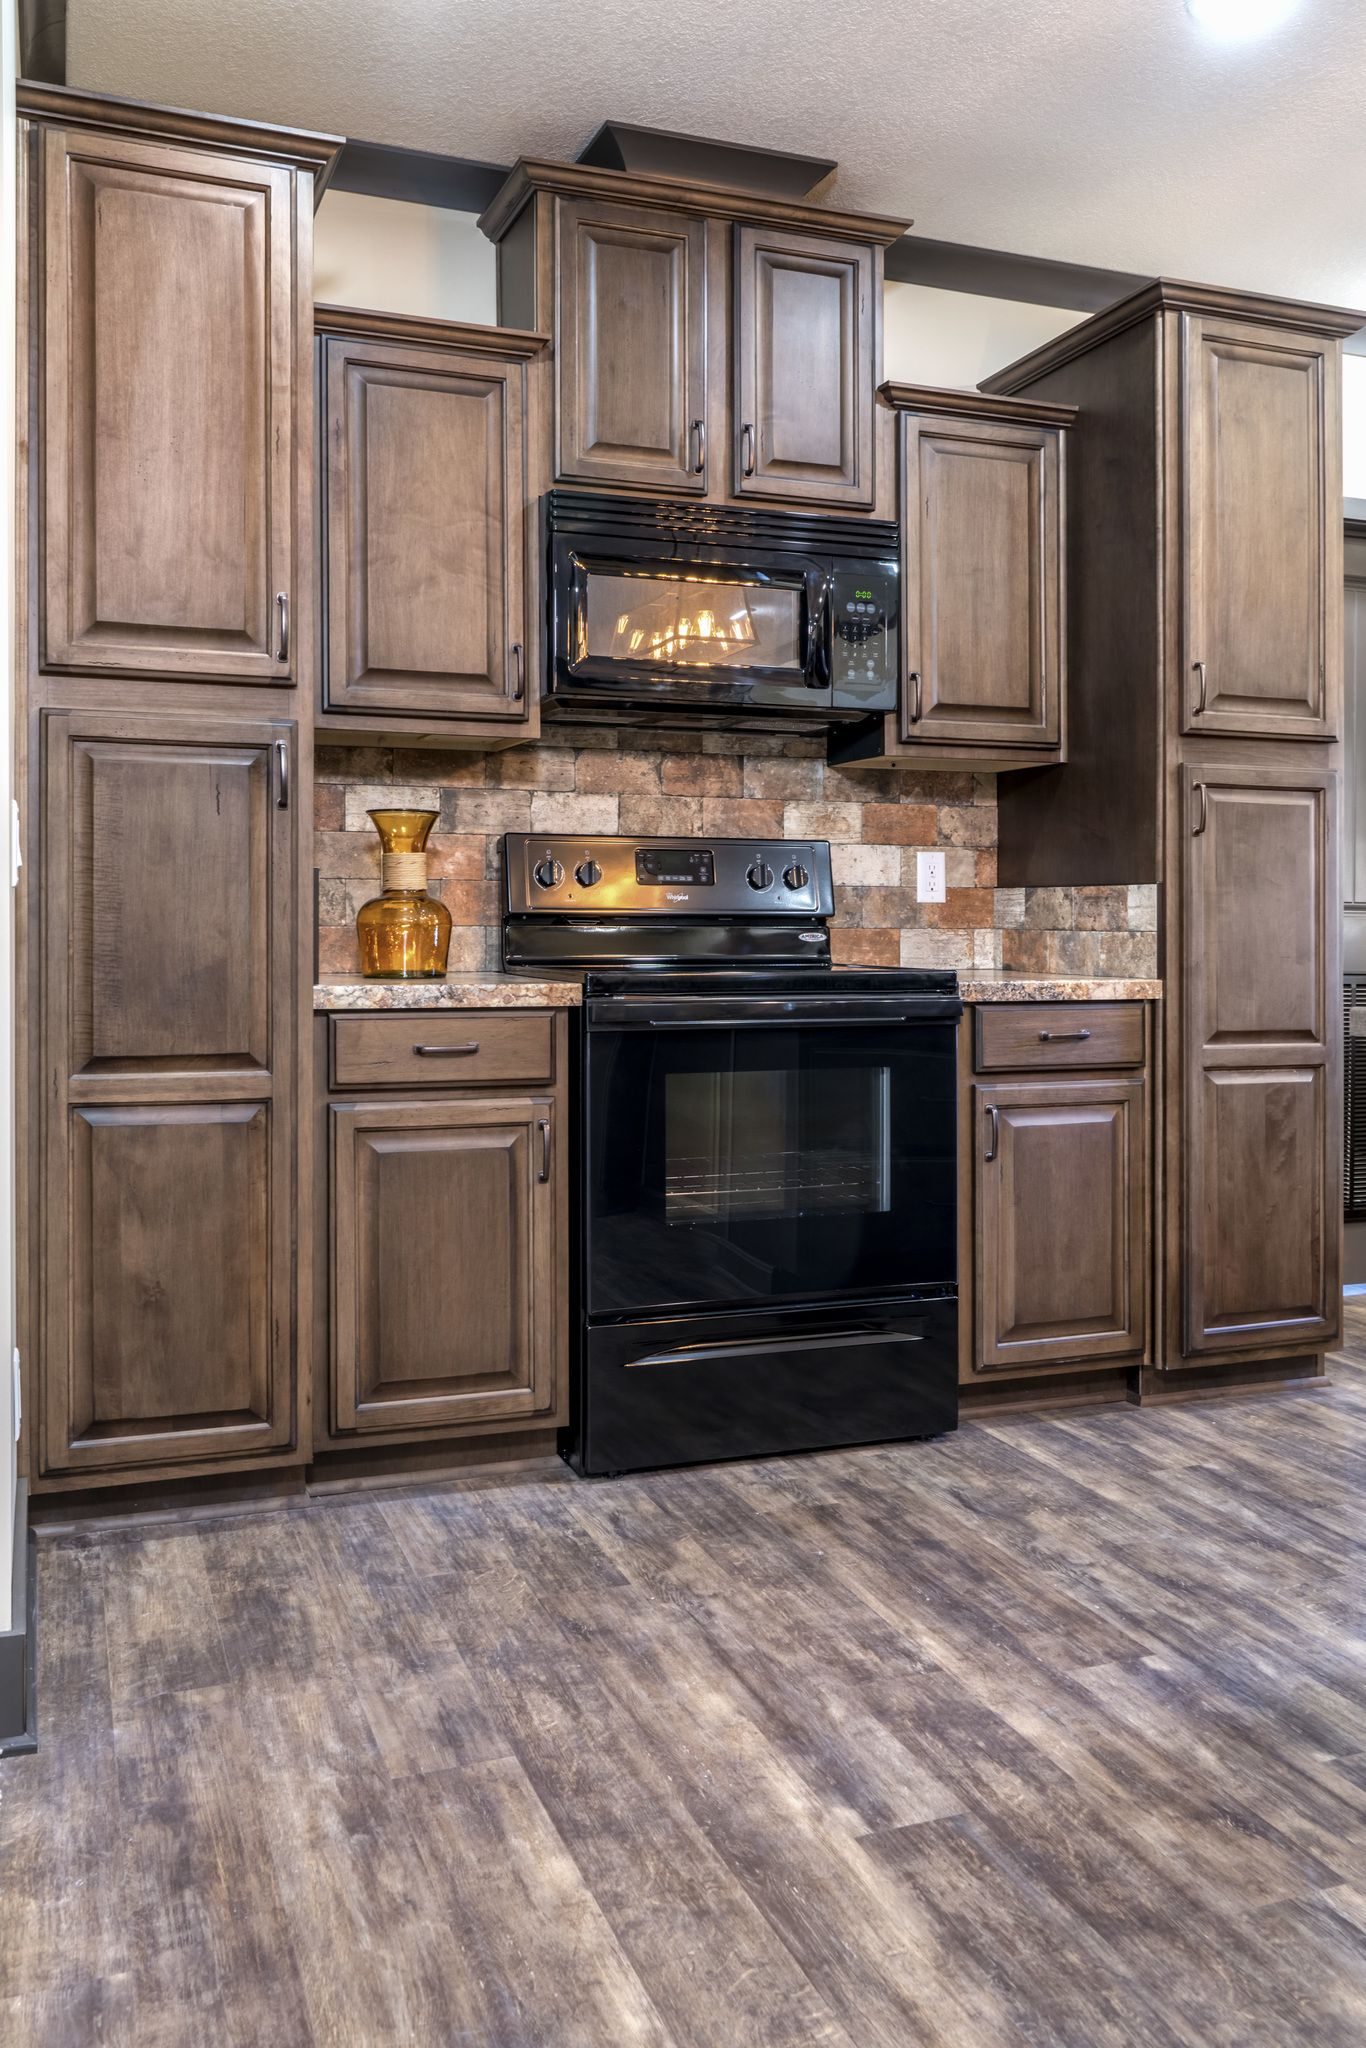 Raised Panel Cabinetry | Cabinetry, Kitchen cabinets, Home ...